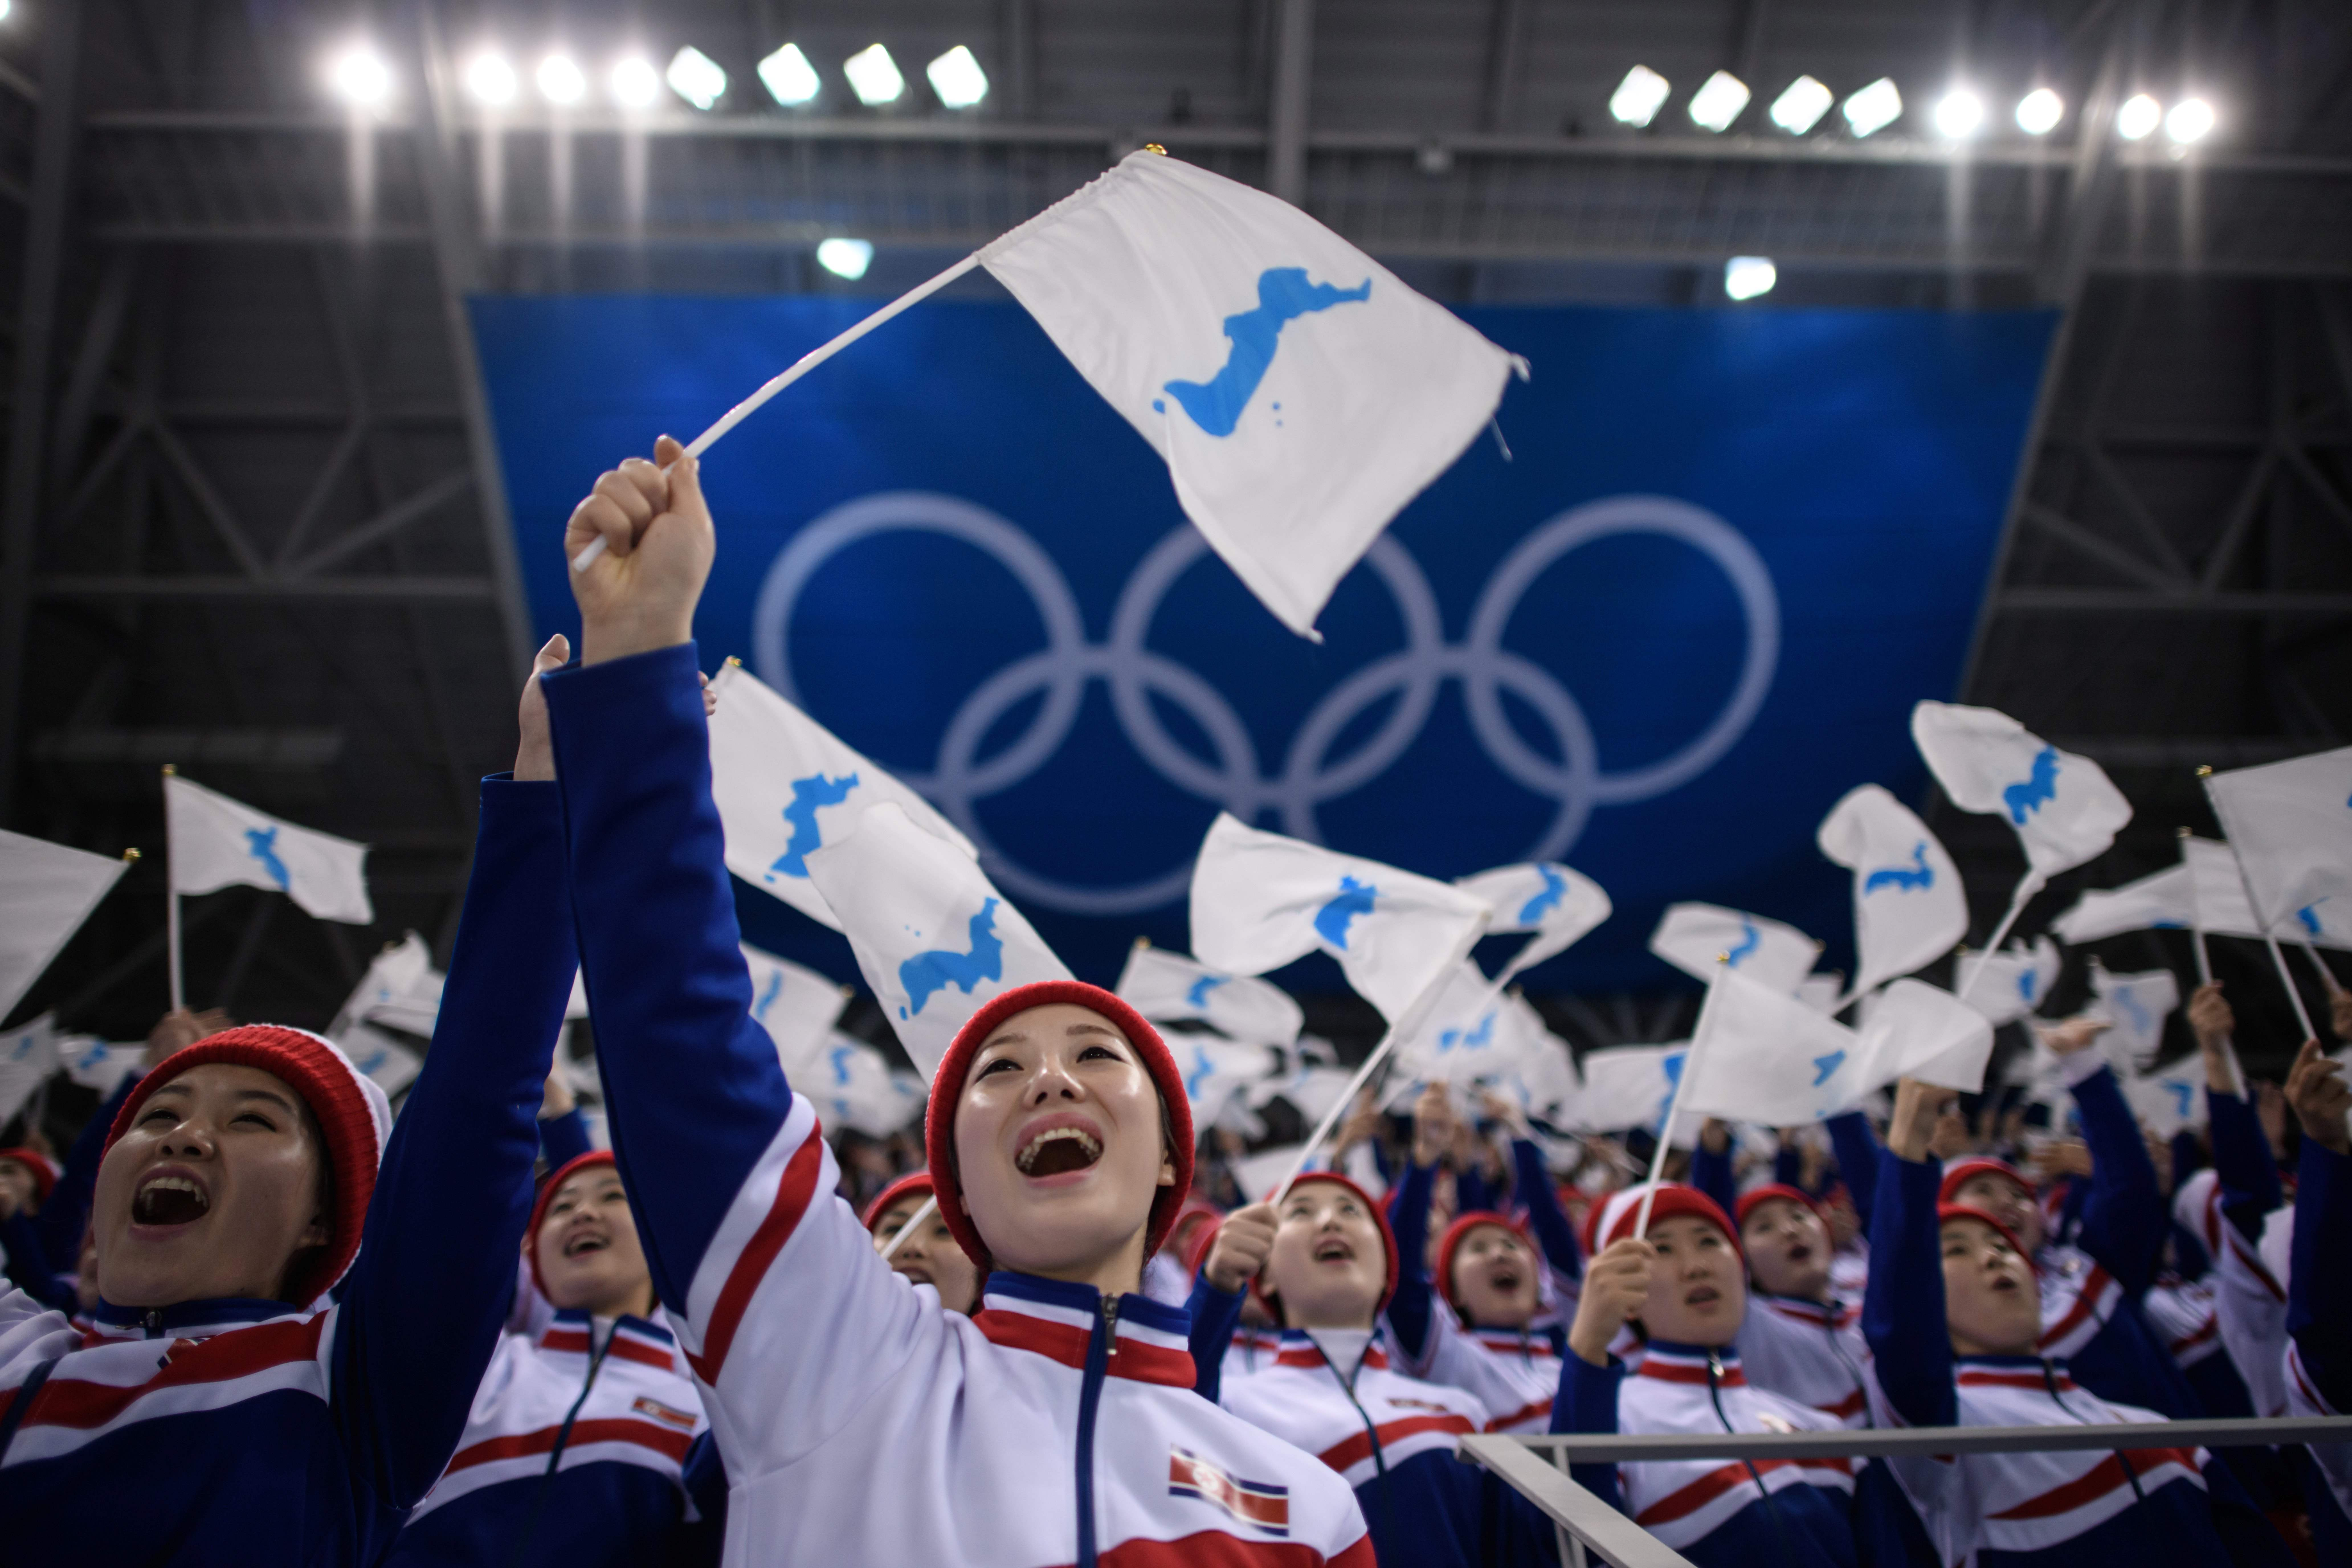 North Korean cheerleaders wave Unified Korea flags during the men's preliminary round ice hockey match between South Korea and Czech Republic during the Pyeongchang 2018 Winter Olympic Games at the Gangneung Hockey Centre in Gangneung on February 15, 2018.